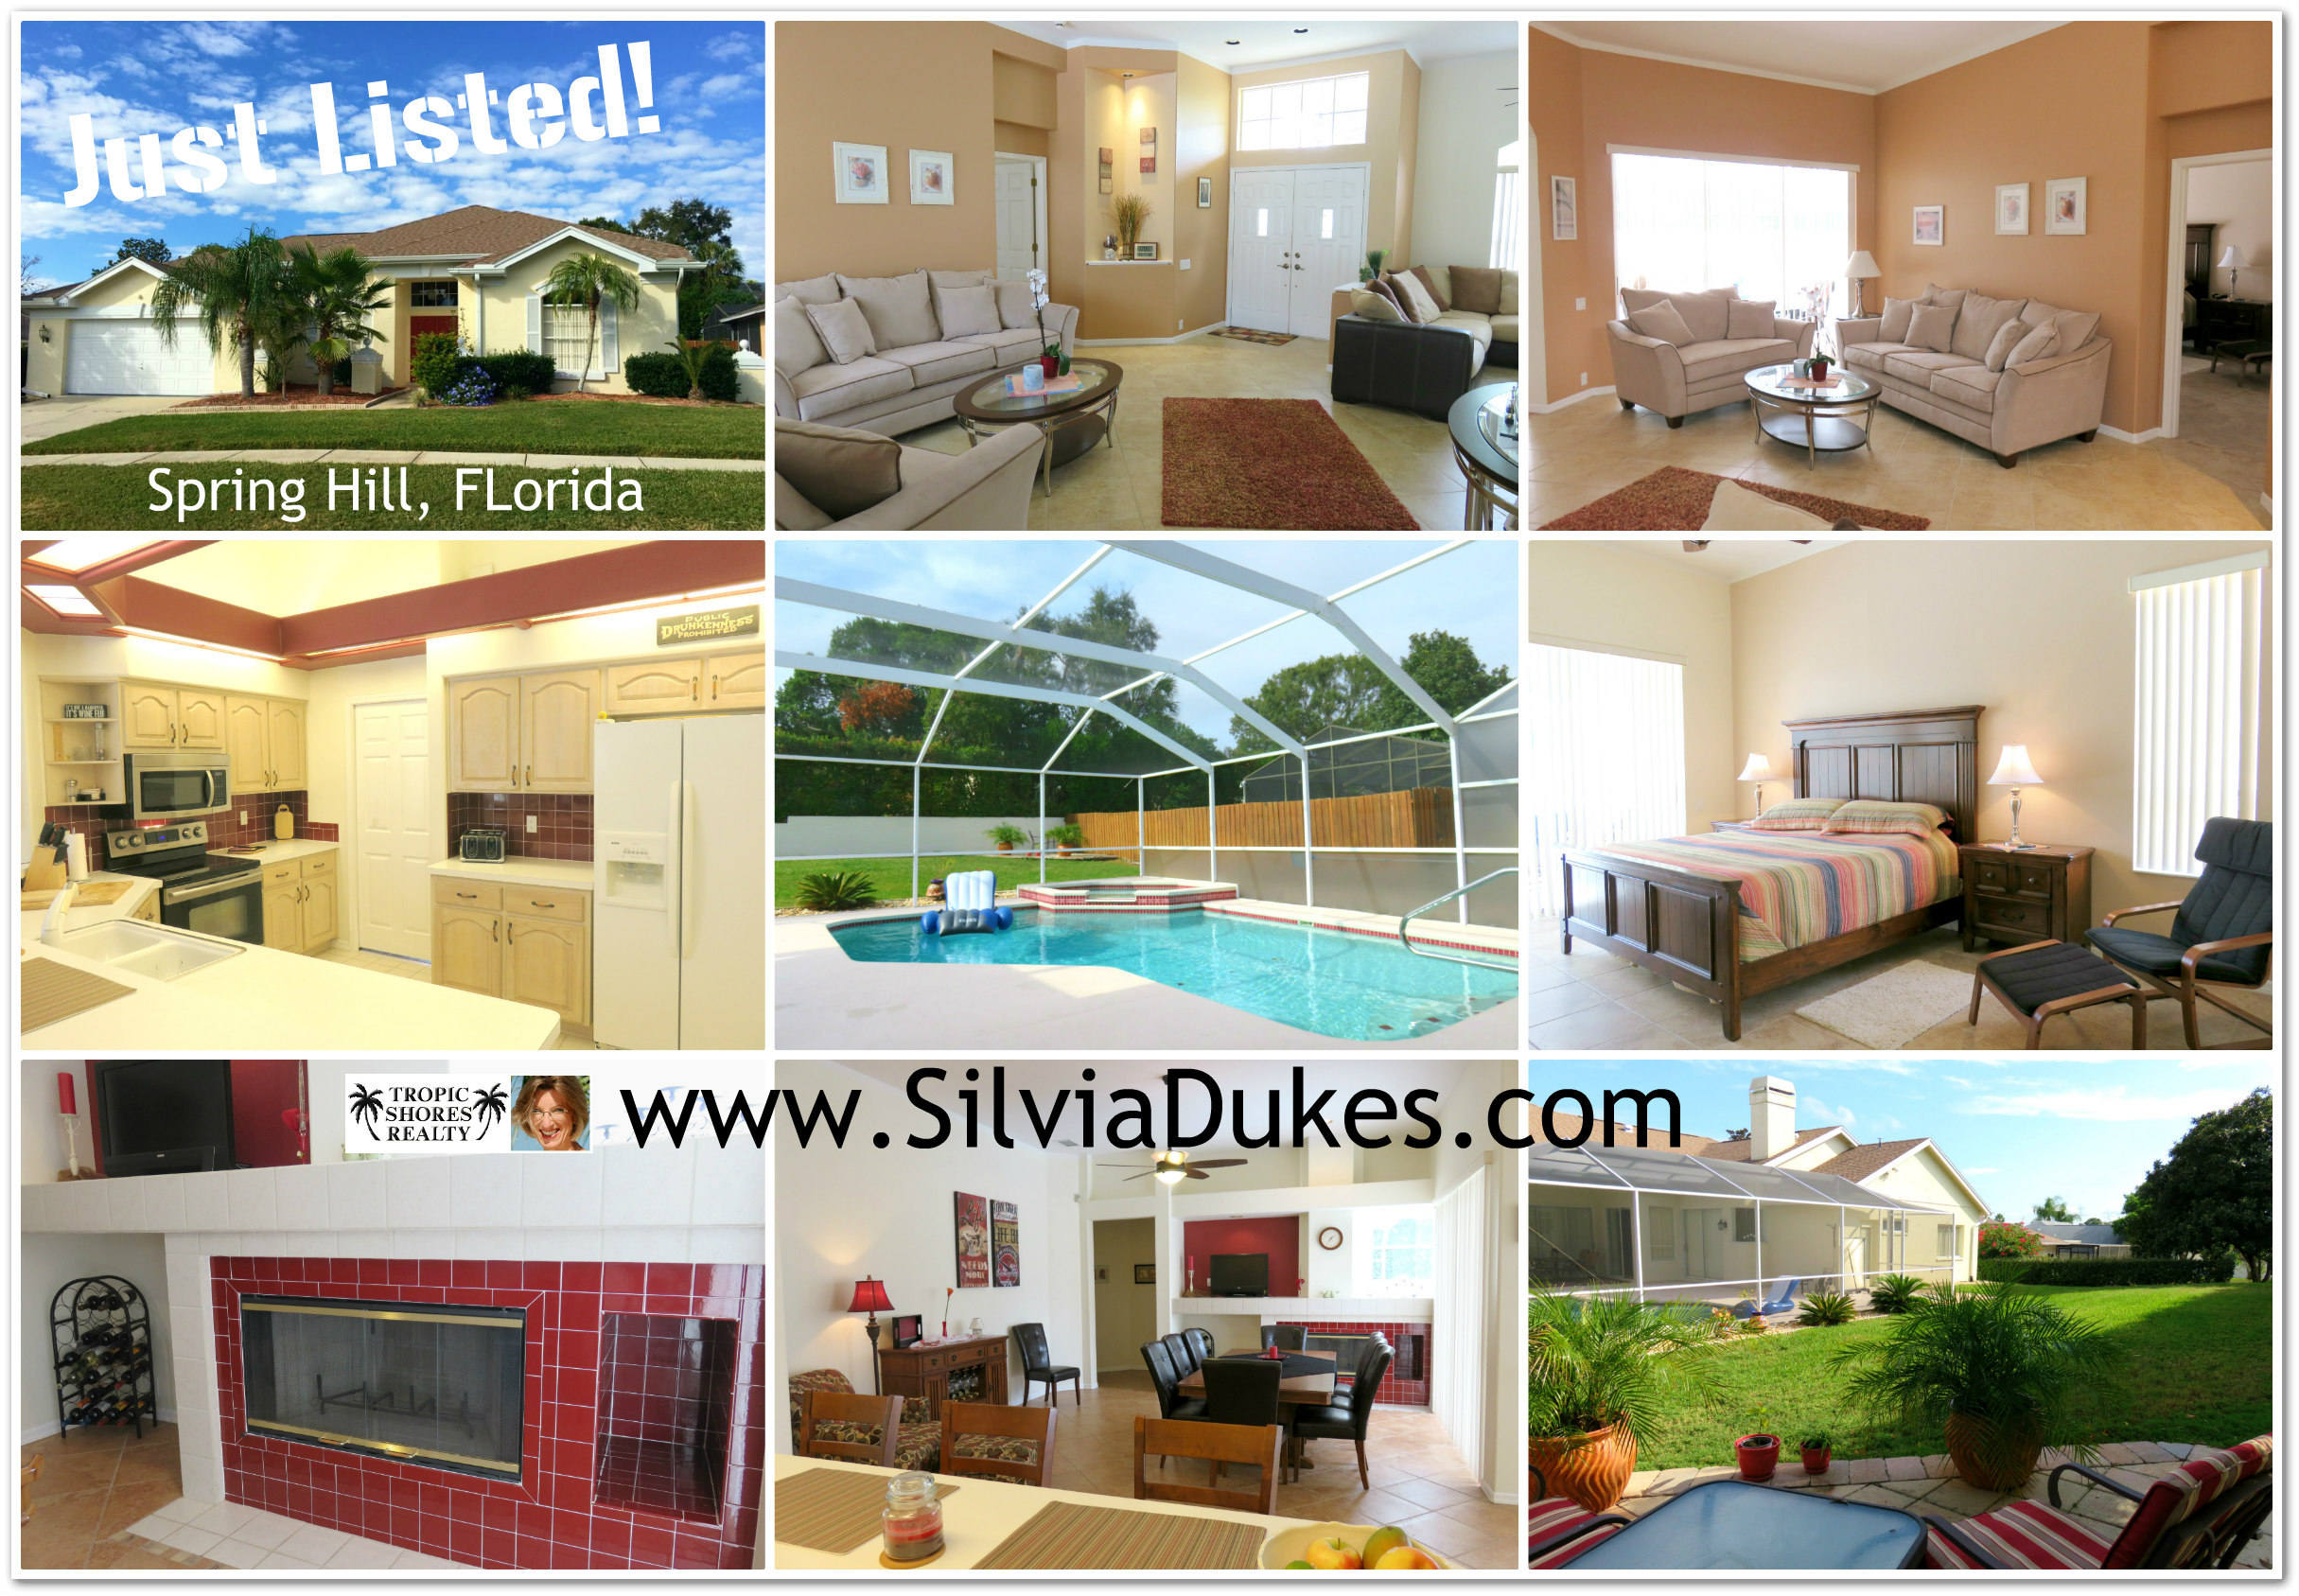 Spring Hill Florida Seven Hills Pool Home for Sale by Realtor Silvia Dukes